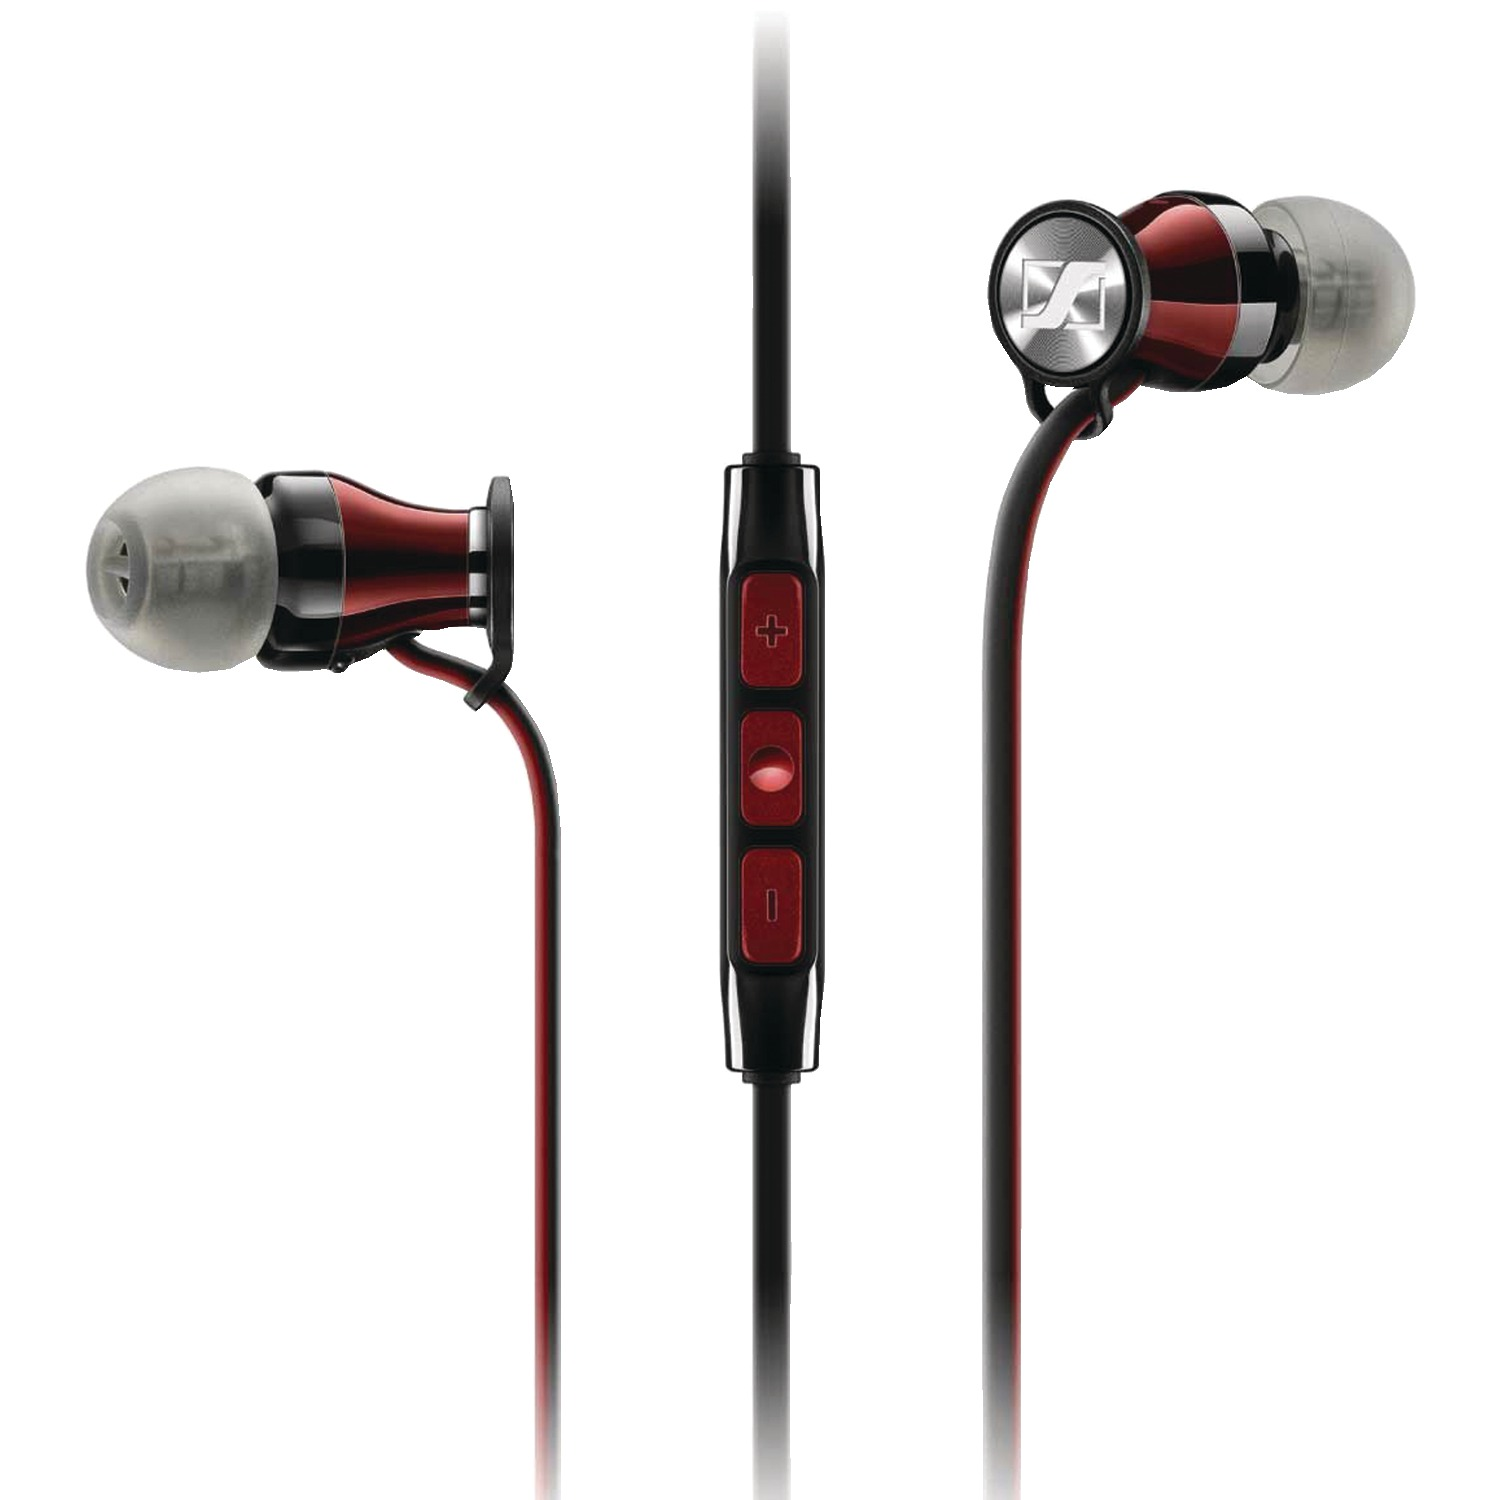 Sennheiser 507408 HD 1 In-Ear Headphones for Samsung Galaxy & Android (Black/Red)